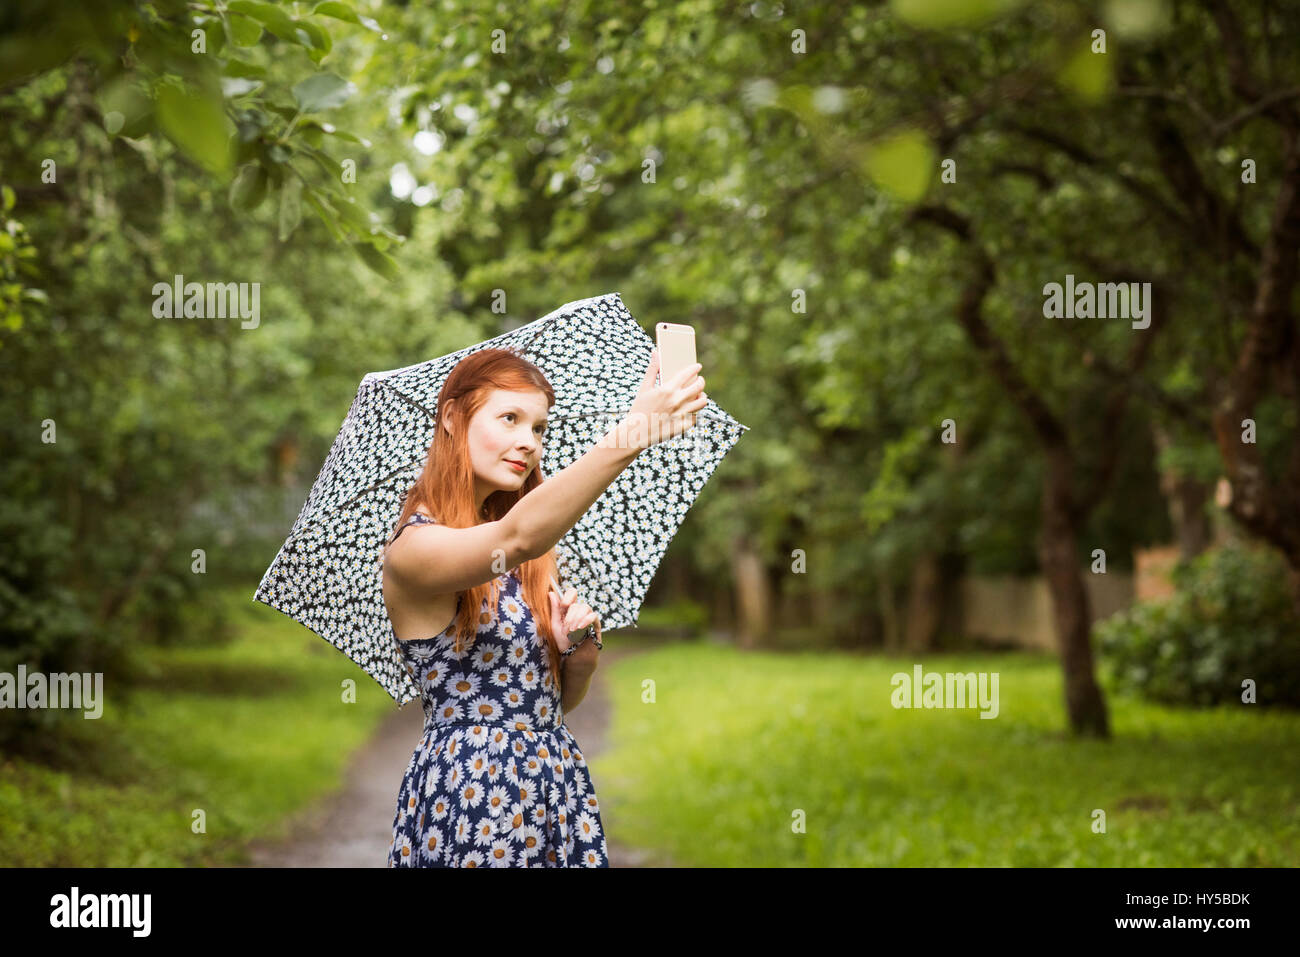 Finland, Pirkanmaa, Tampere, Woman wearing floral dress standing with umbrella in park and taking selfie - Stock Image